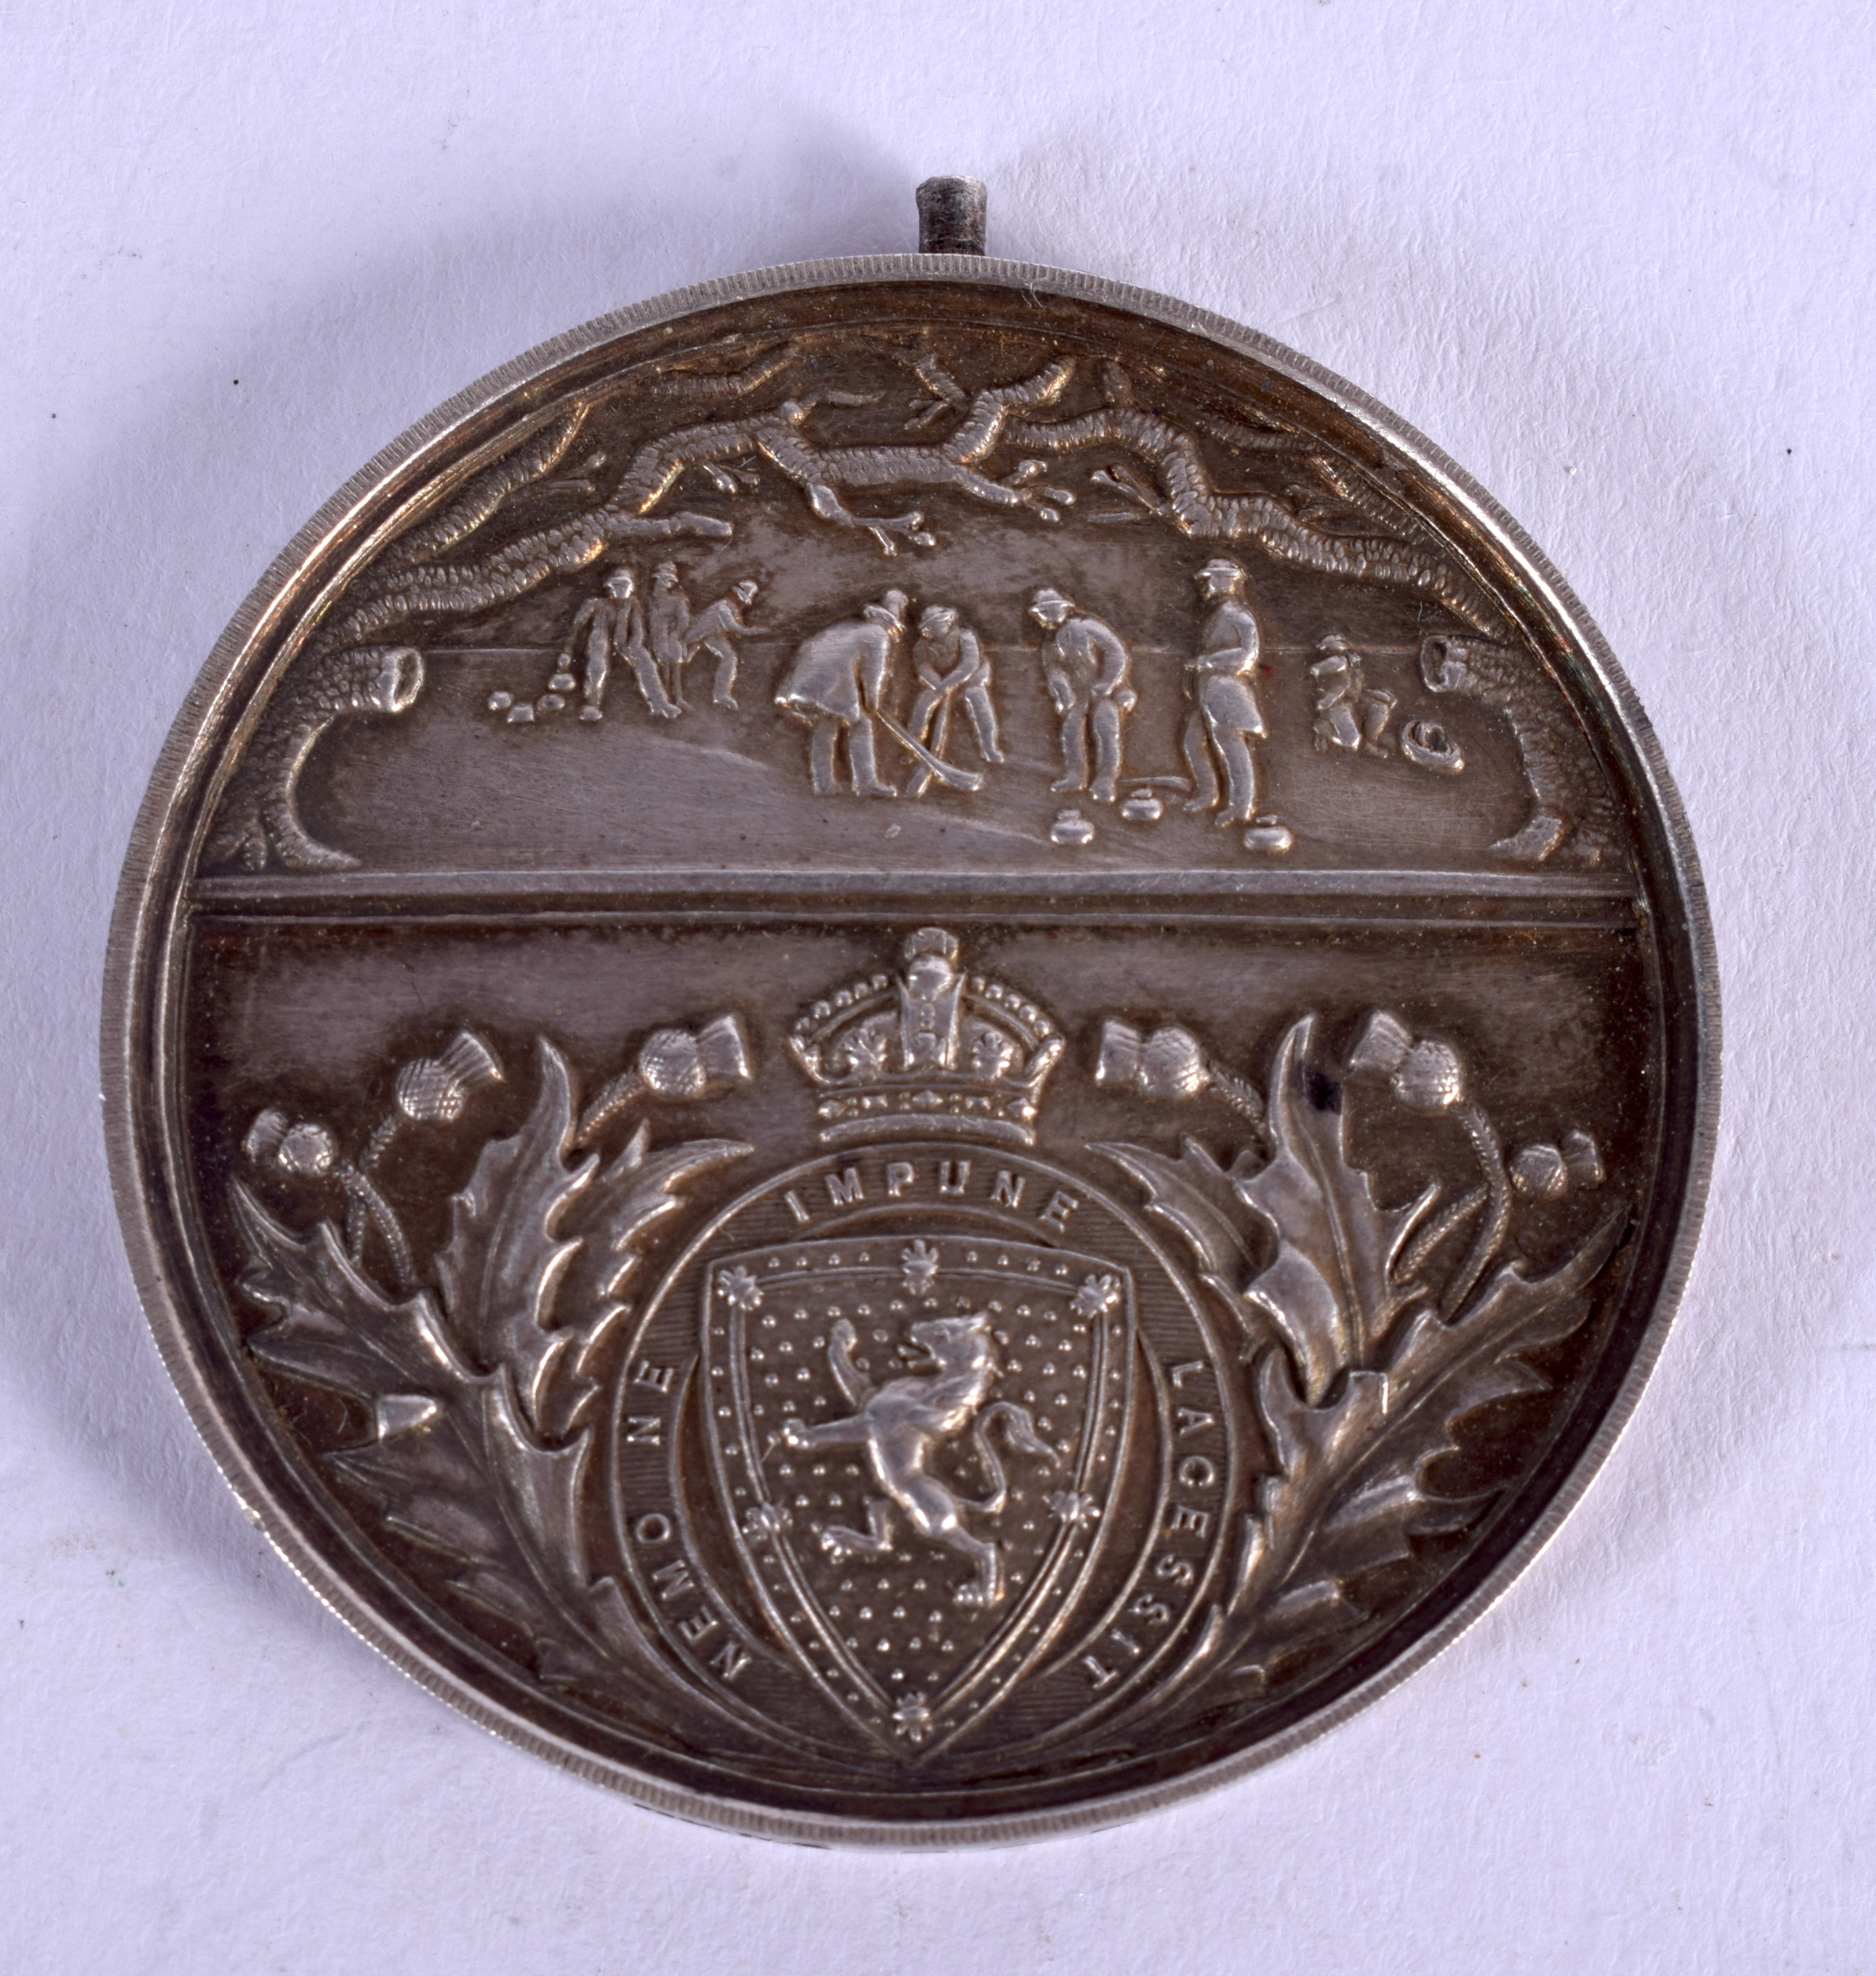 AN ANTIQUE ROYAL CALEDONIAN CURLING MEDAL. 26 grams. 4.5 cm wide.